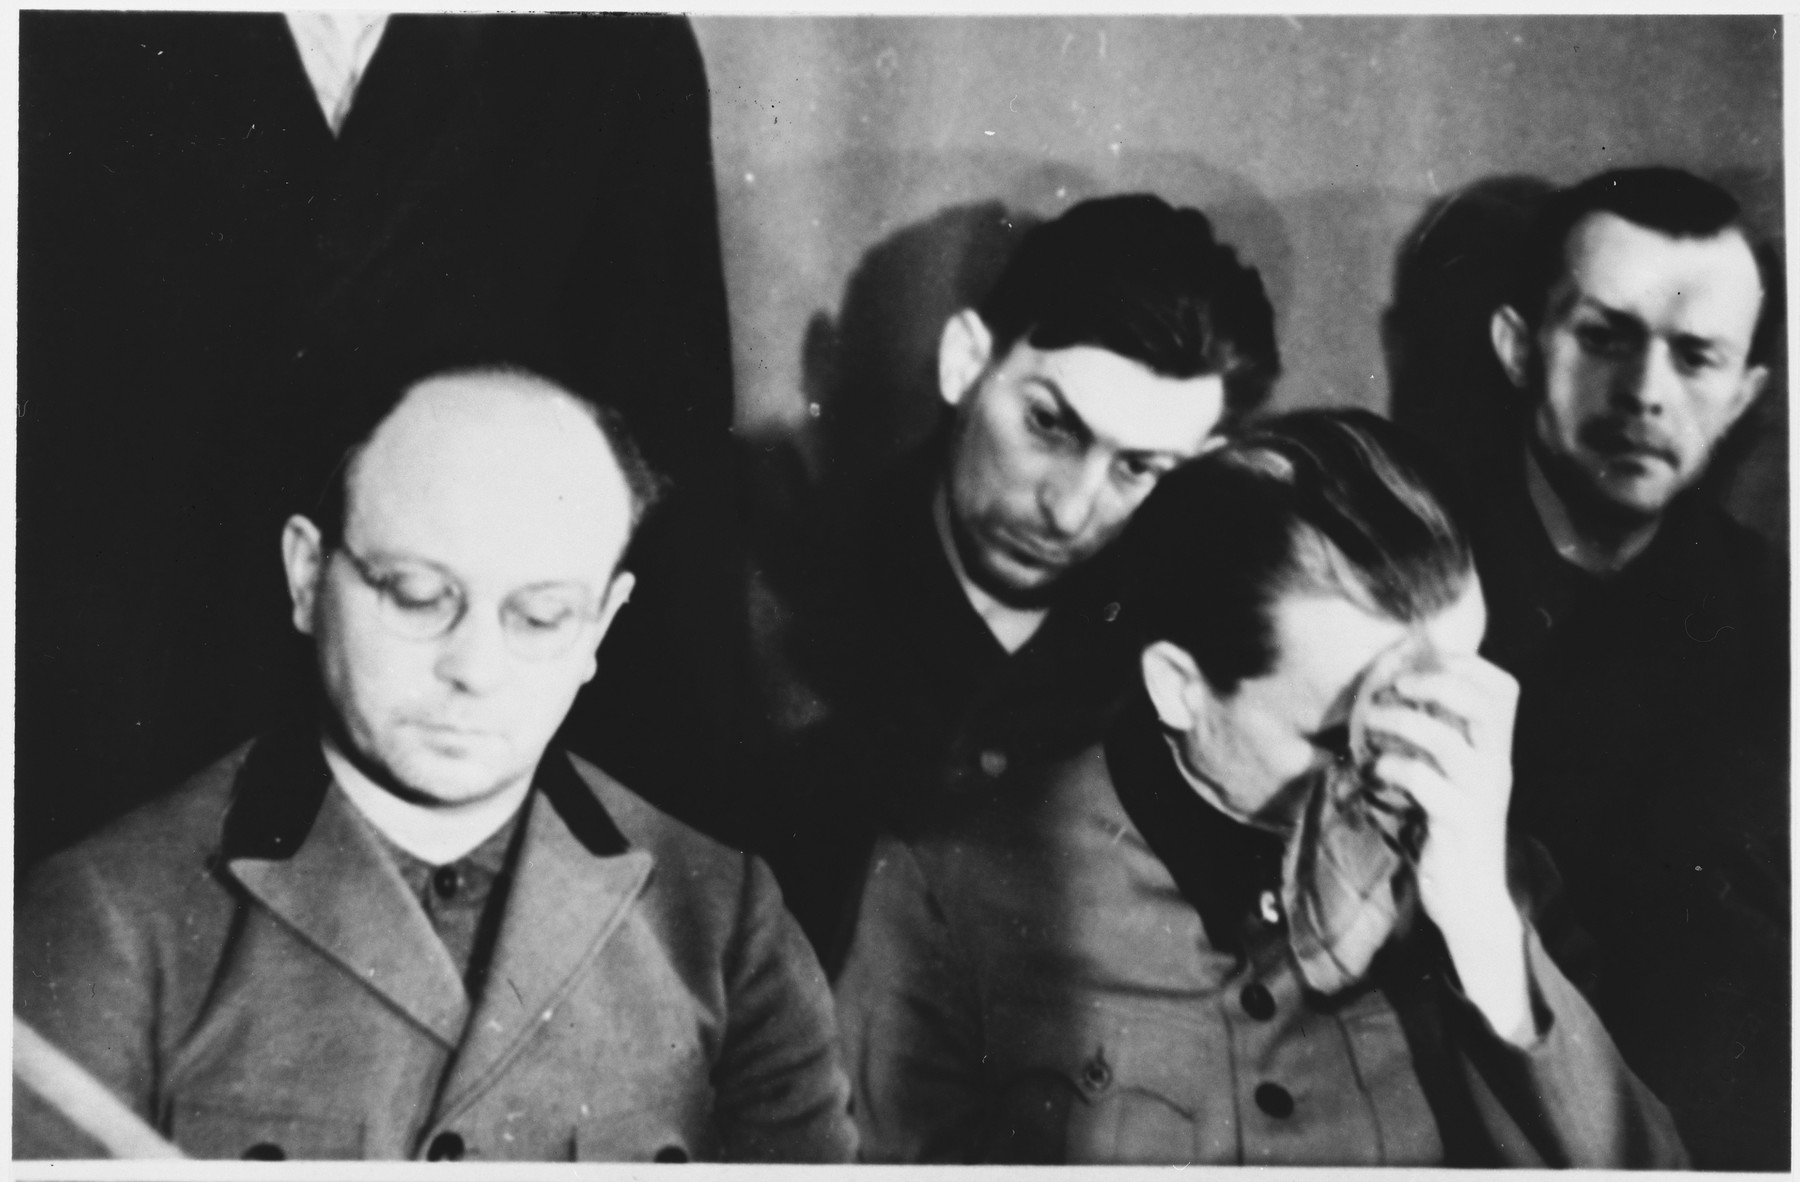 Defendants Anton Kaindl (left) and Gustav Sorge (back middle) at the Sachsenhausen concentration camp war crimes trial in Berlin.